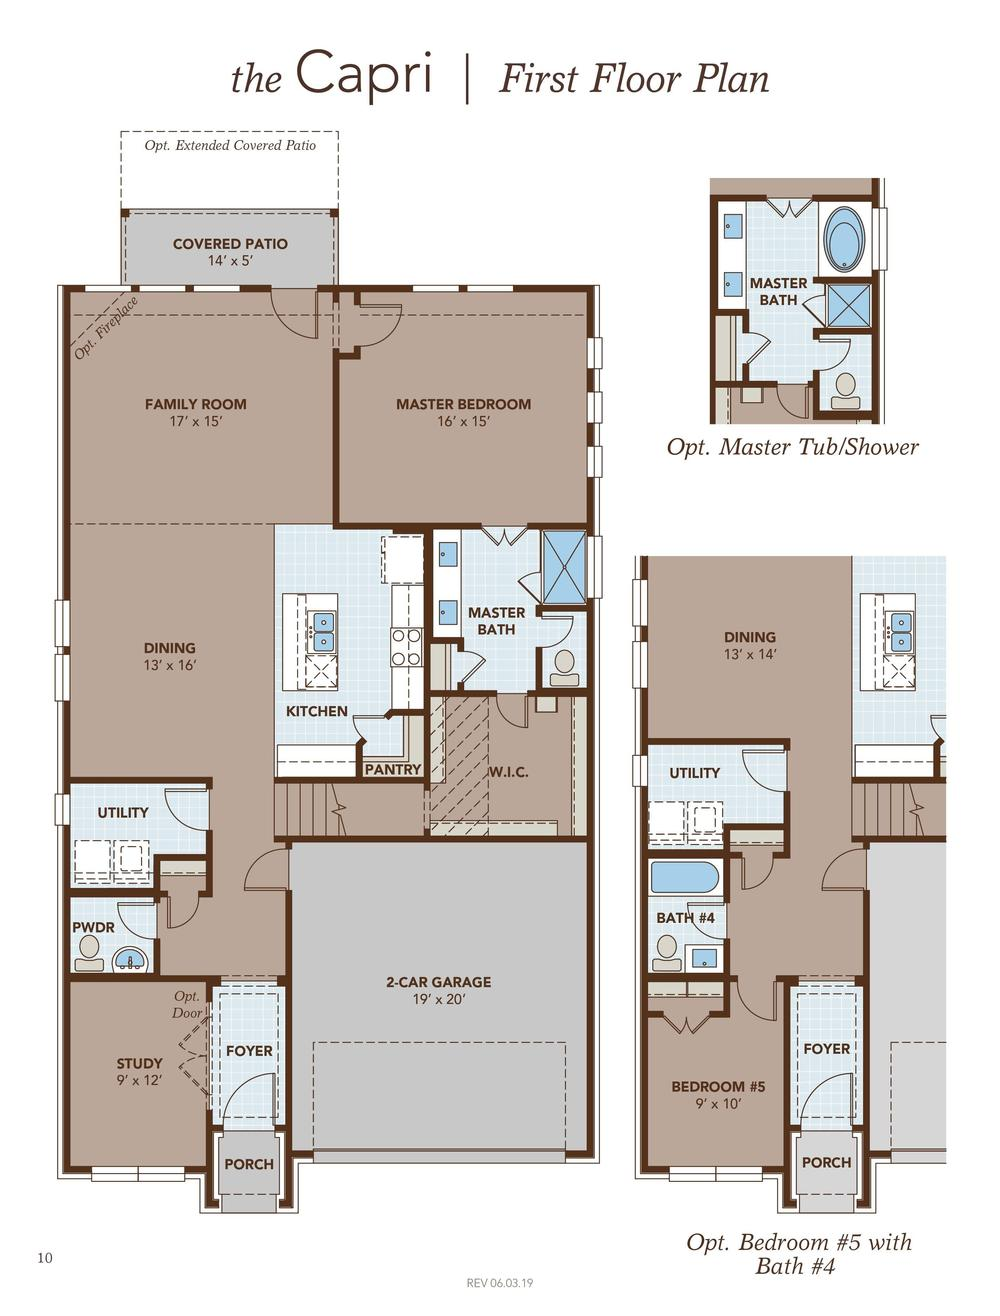 Capri First Floor Plan